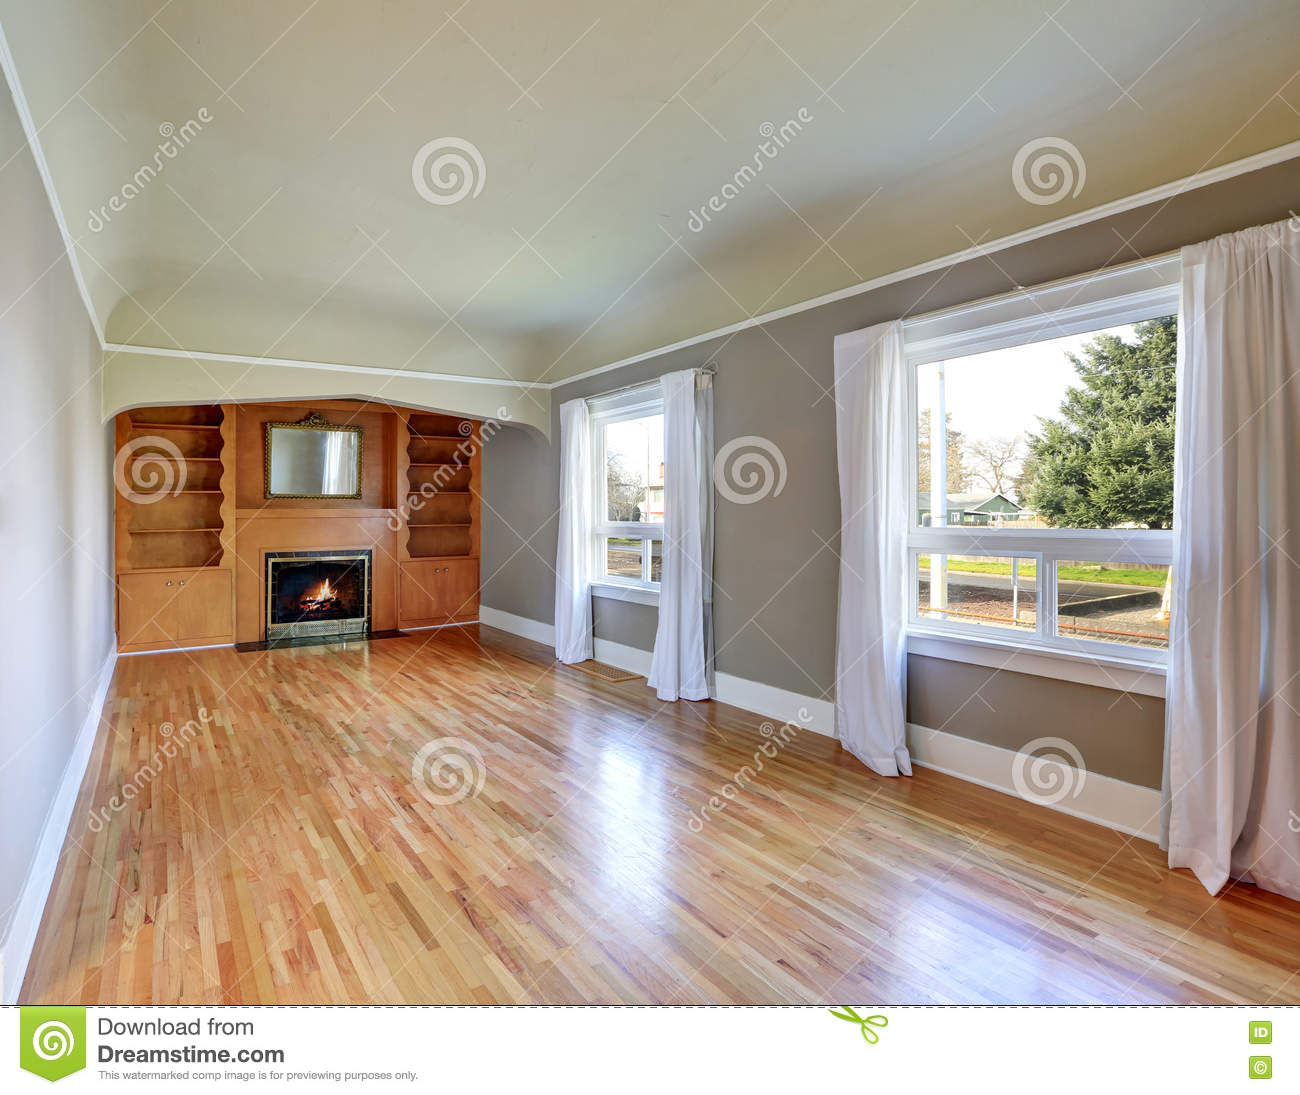 Unfurnished Living Room Interior In Old Craftsman House Royalty Free Stock  Photo